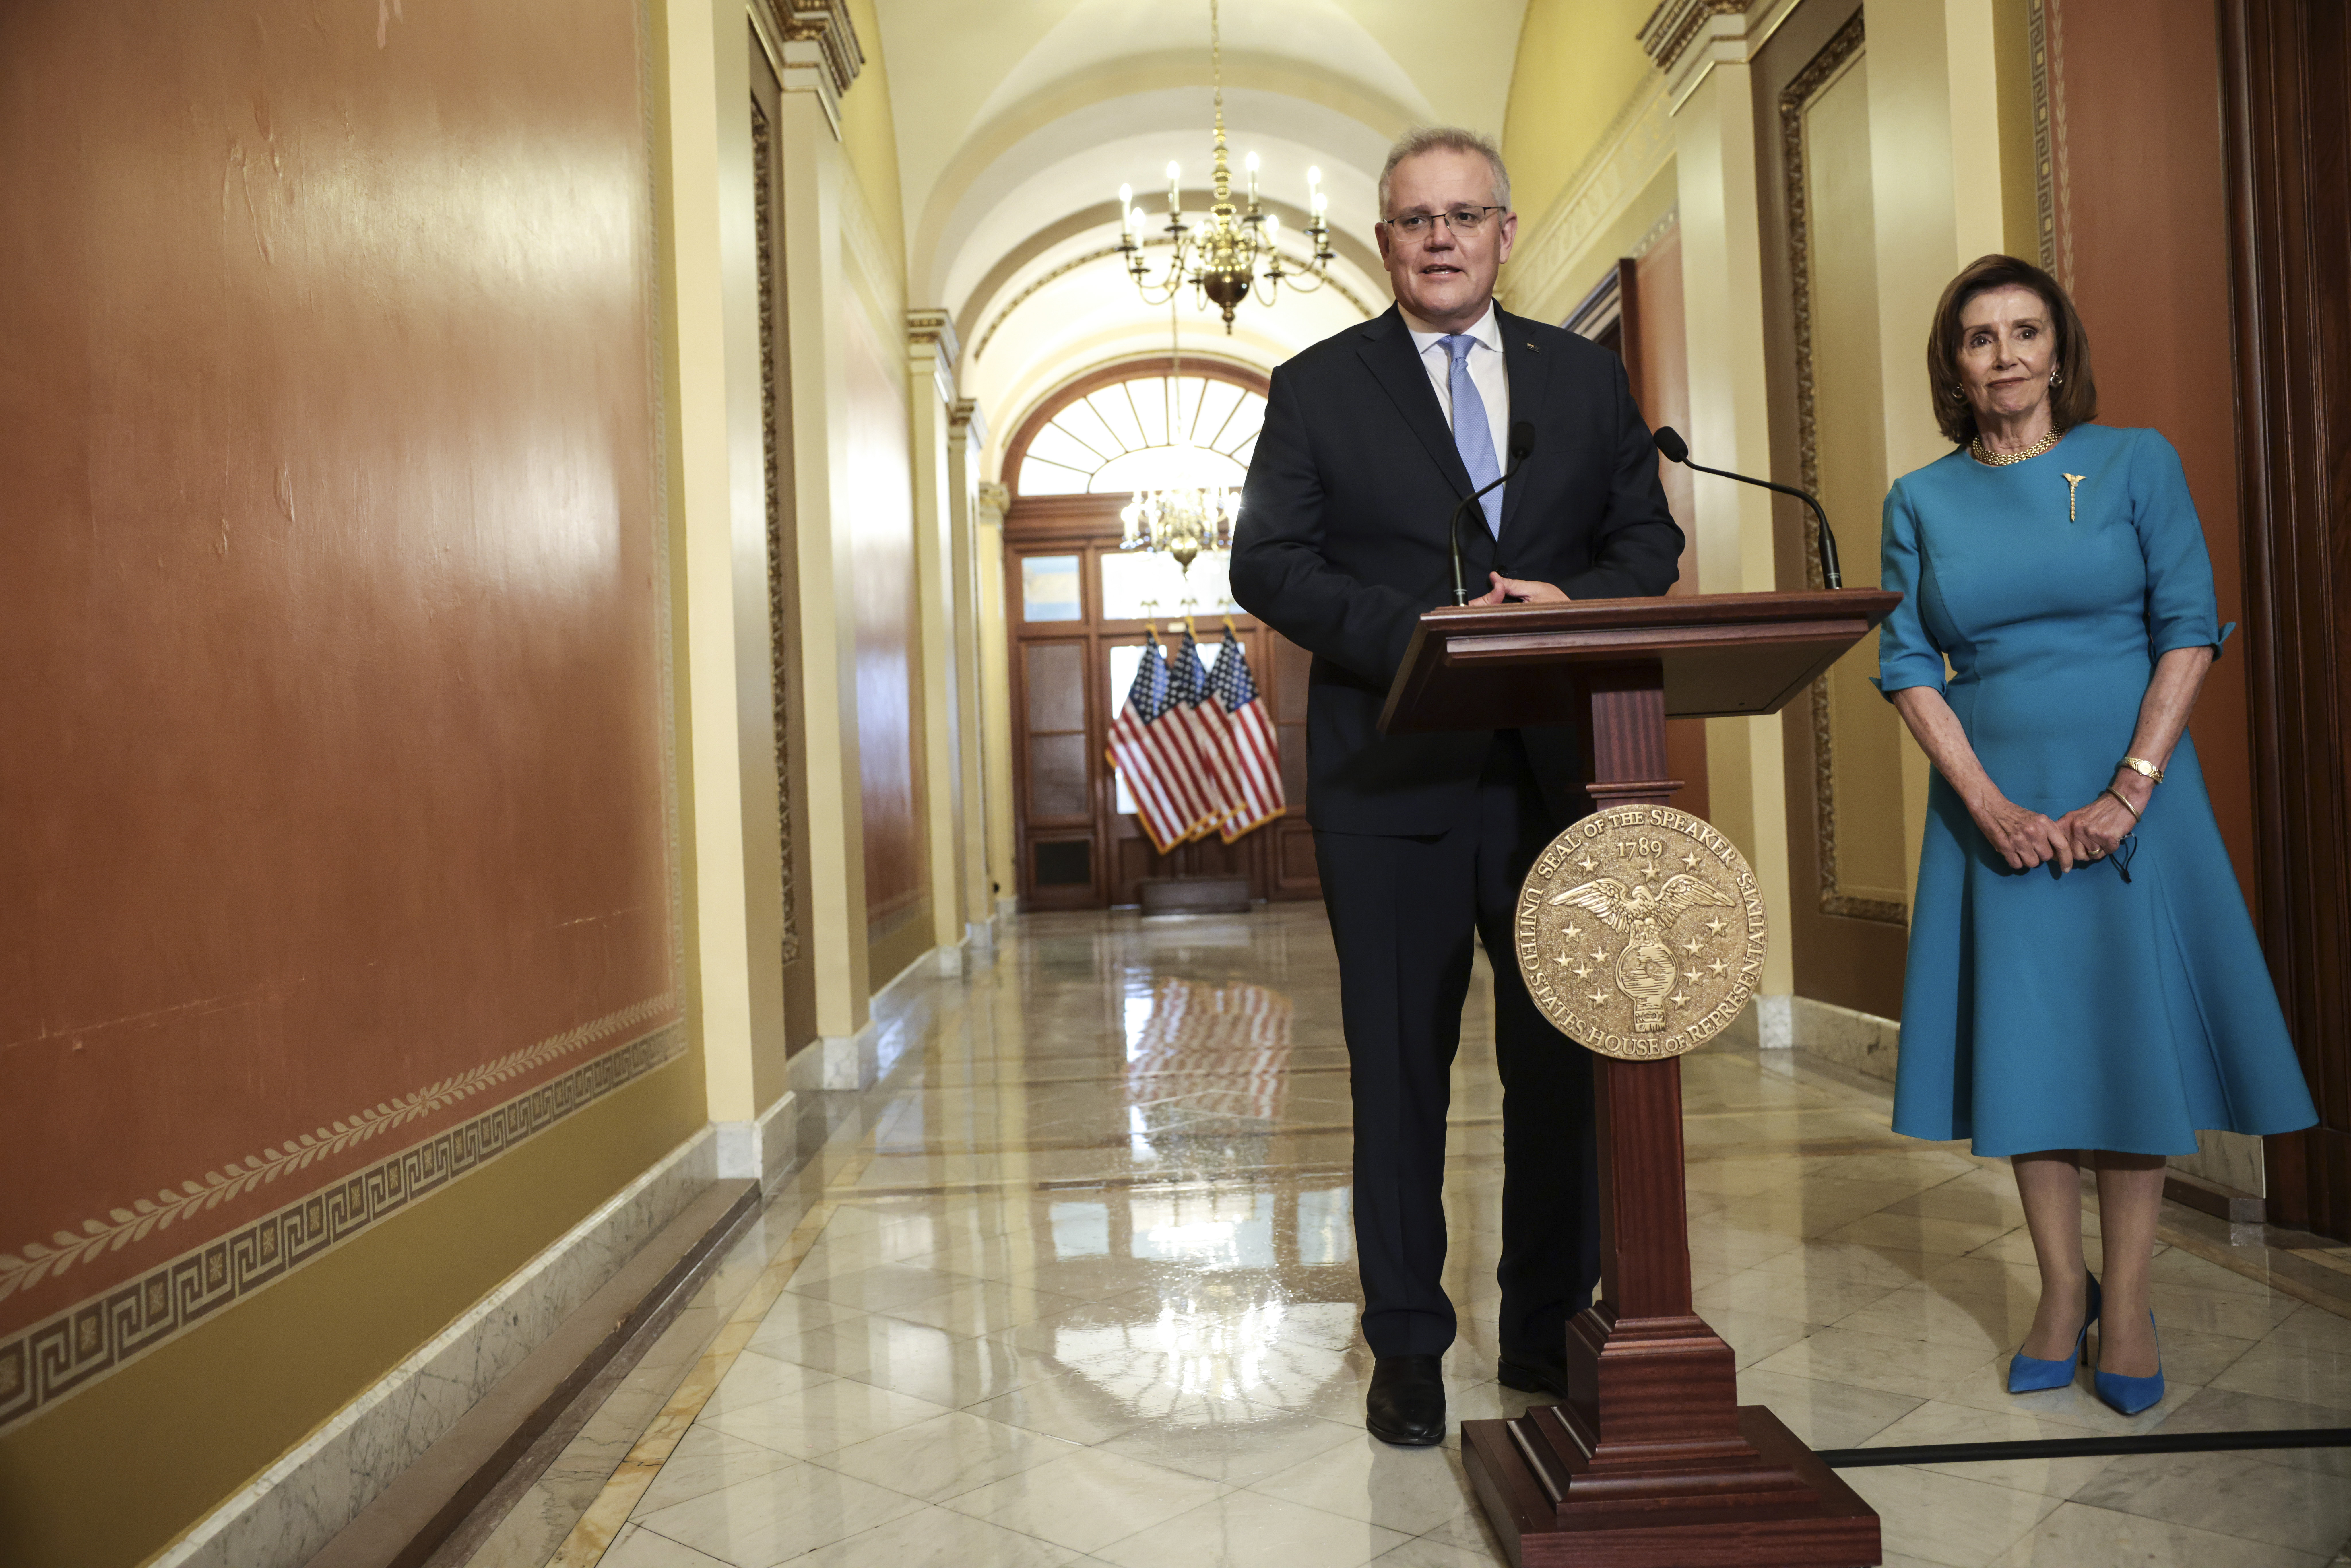 Australian Prime Minister Scott Morrison gives remarks after being welcomed by House Speaker Nancy Pelosi (D-Calif.) outside her office in the U.S. Capitol on September 22, 2021 in Washington, D.C. (Photo by Anna Moneymaker/Getty Images)